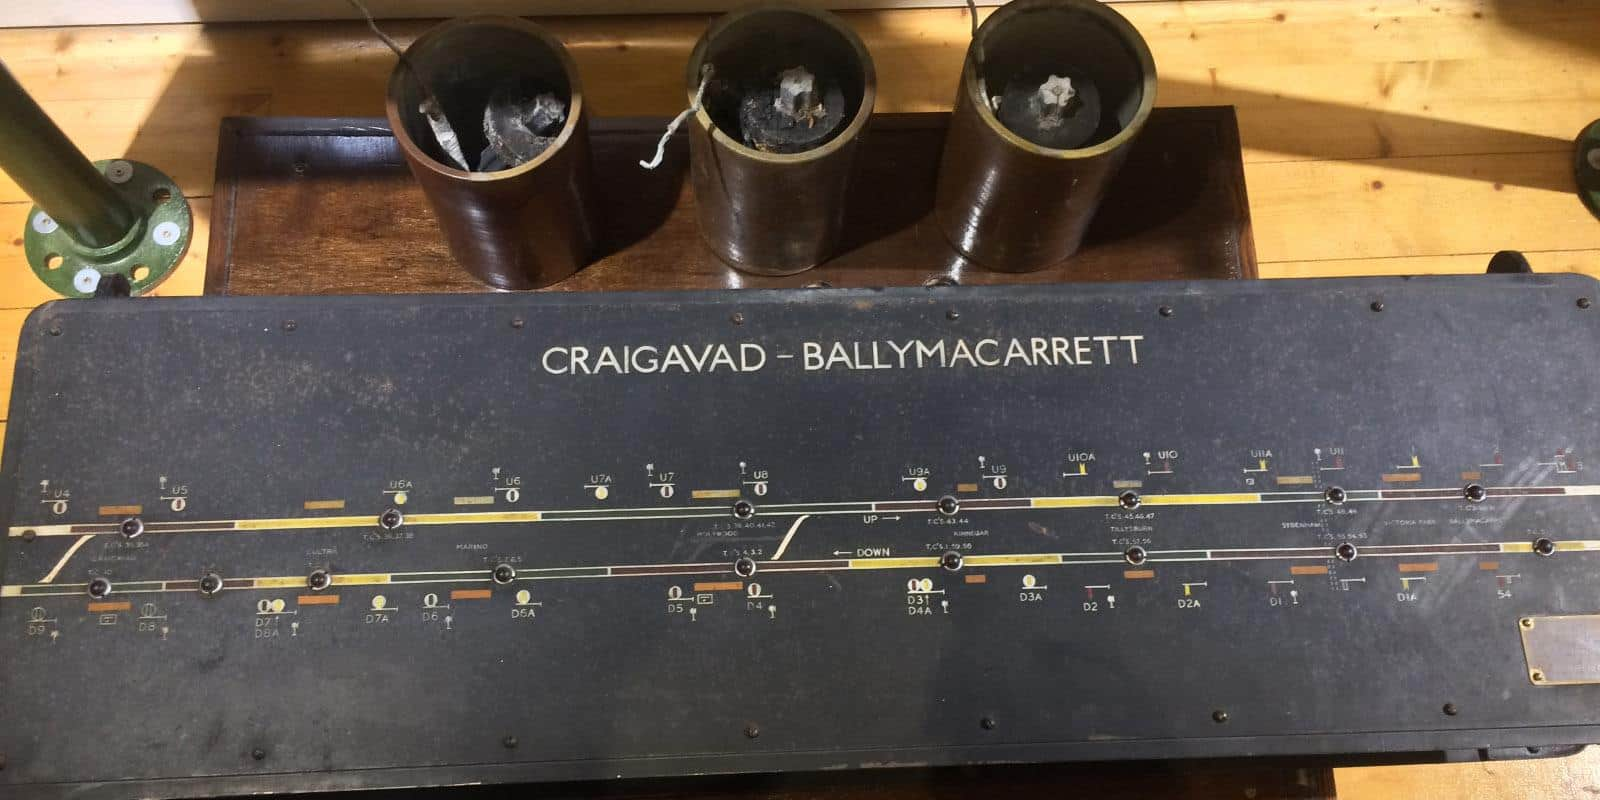 An original signal cabin diagram of a section of the Bangor line